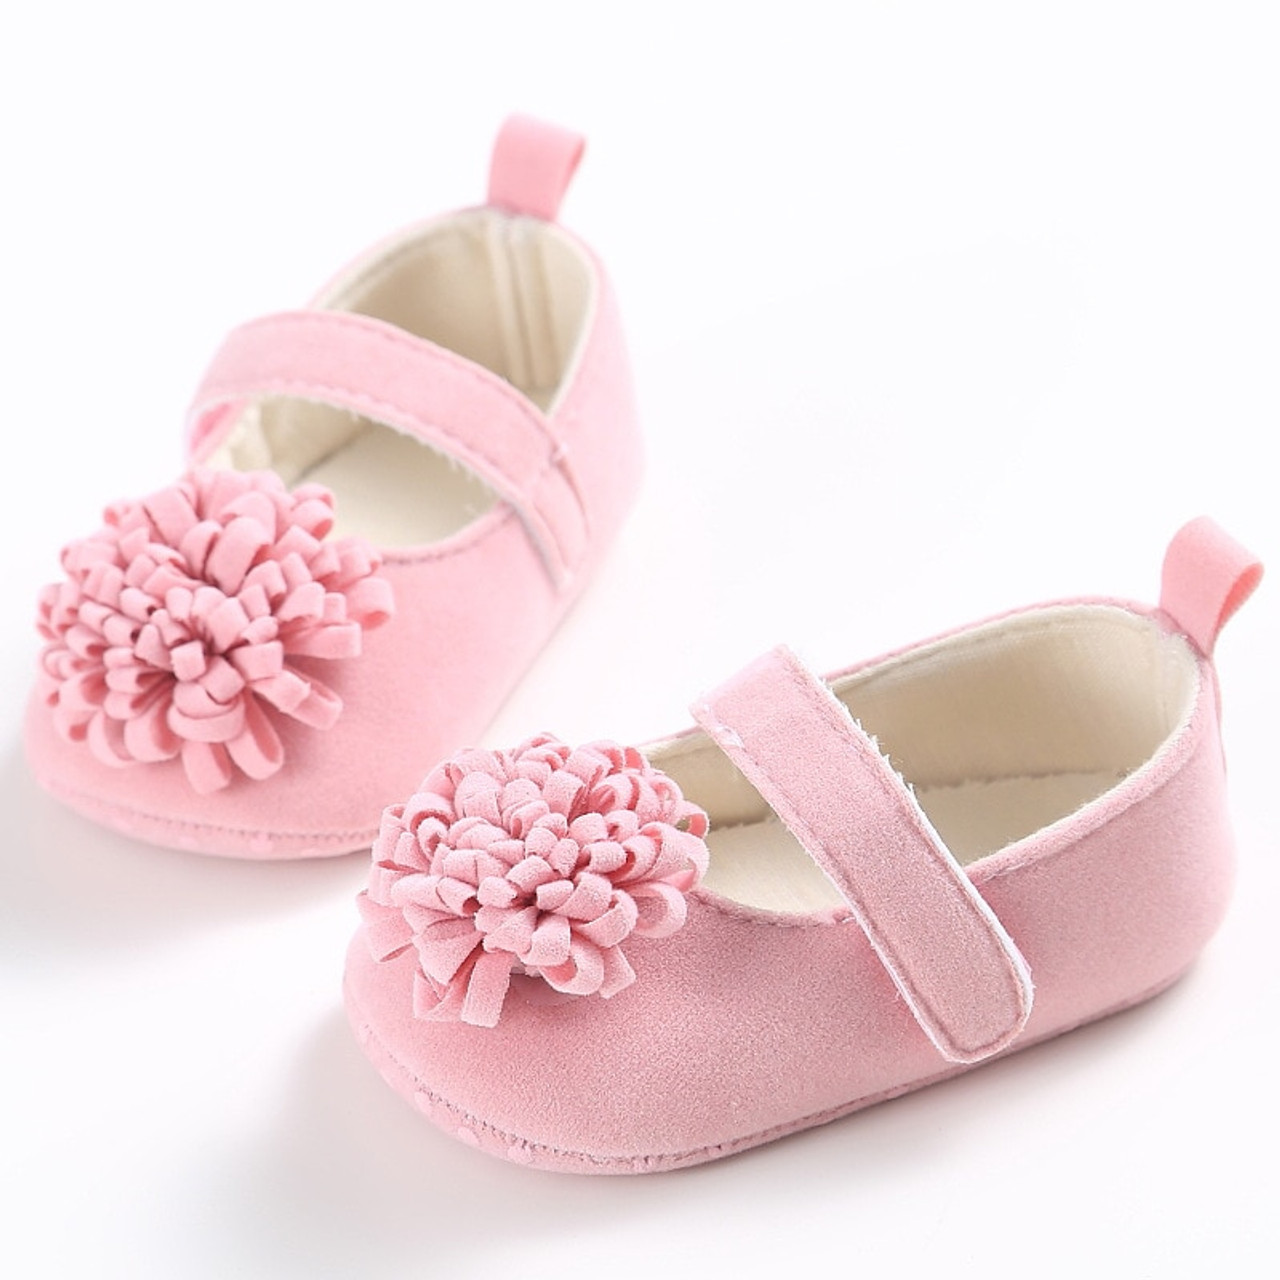 Newborn Crib Shoes Baby Girl Crib Shoes 1 Year Old Summer Baby Girl Shoes Newborn Soft Bottom Flowers Princess Series Baby Shoes Yd221r